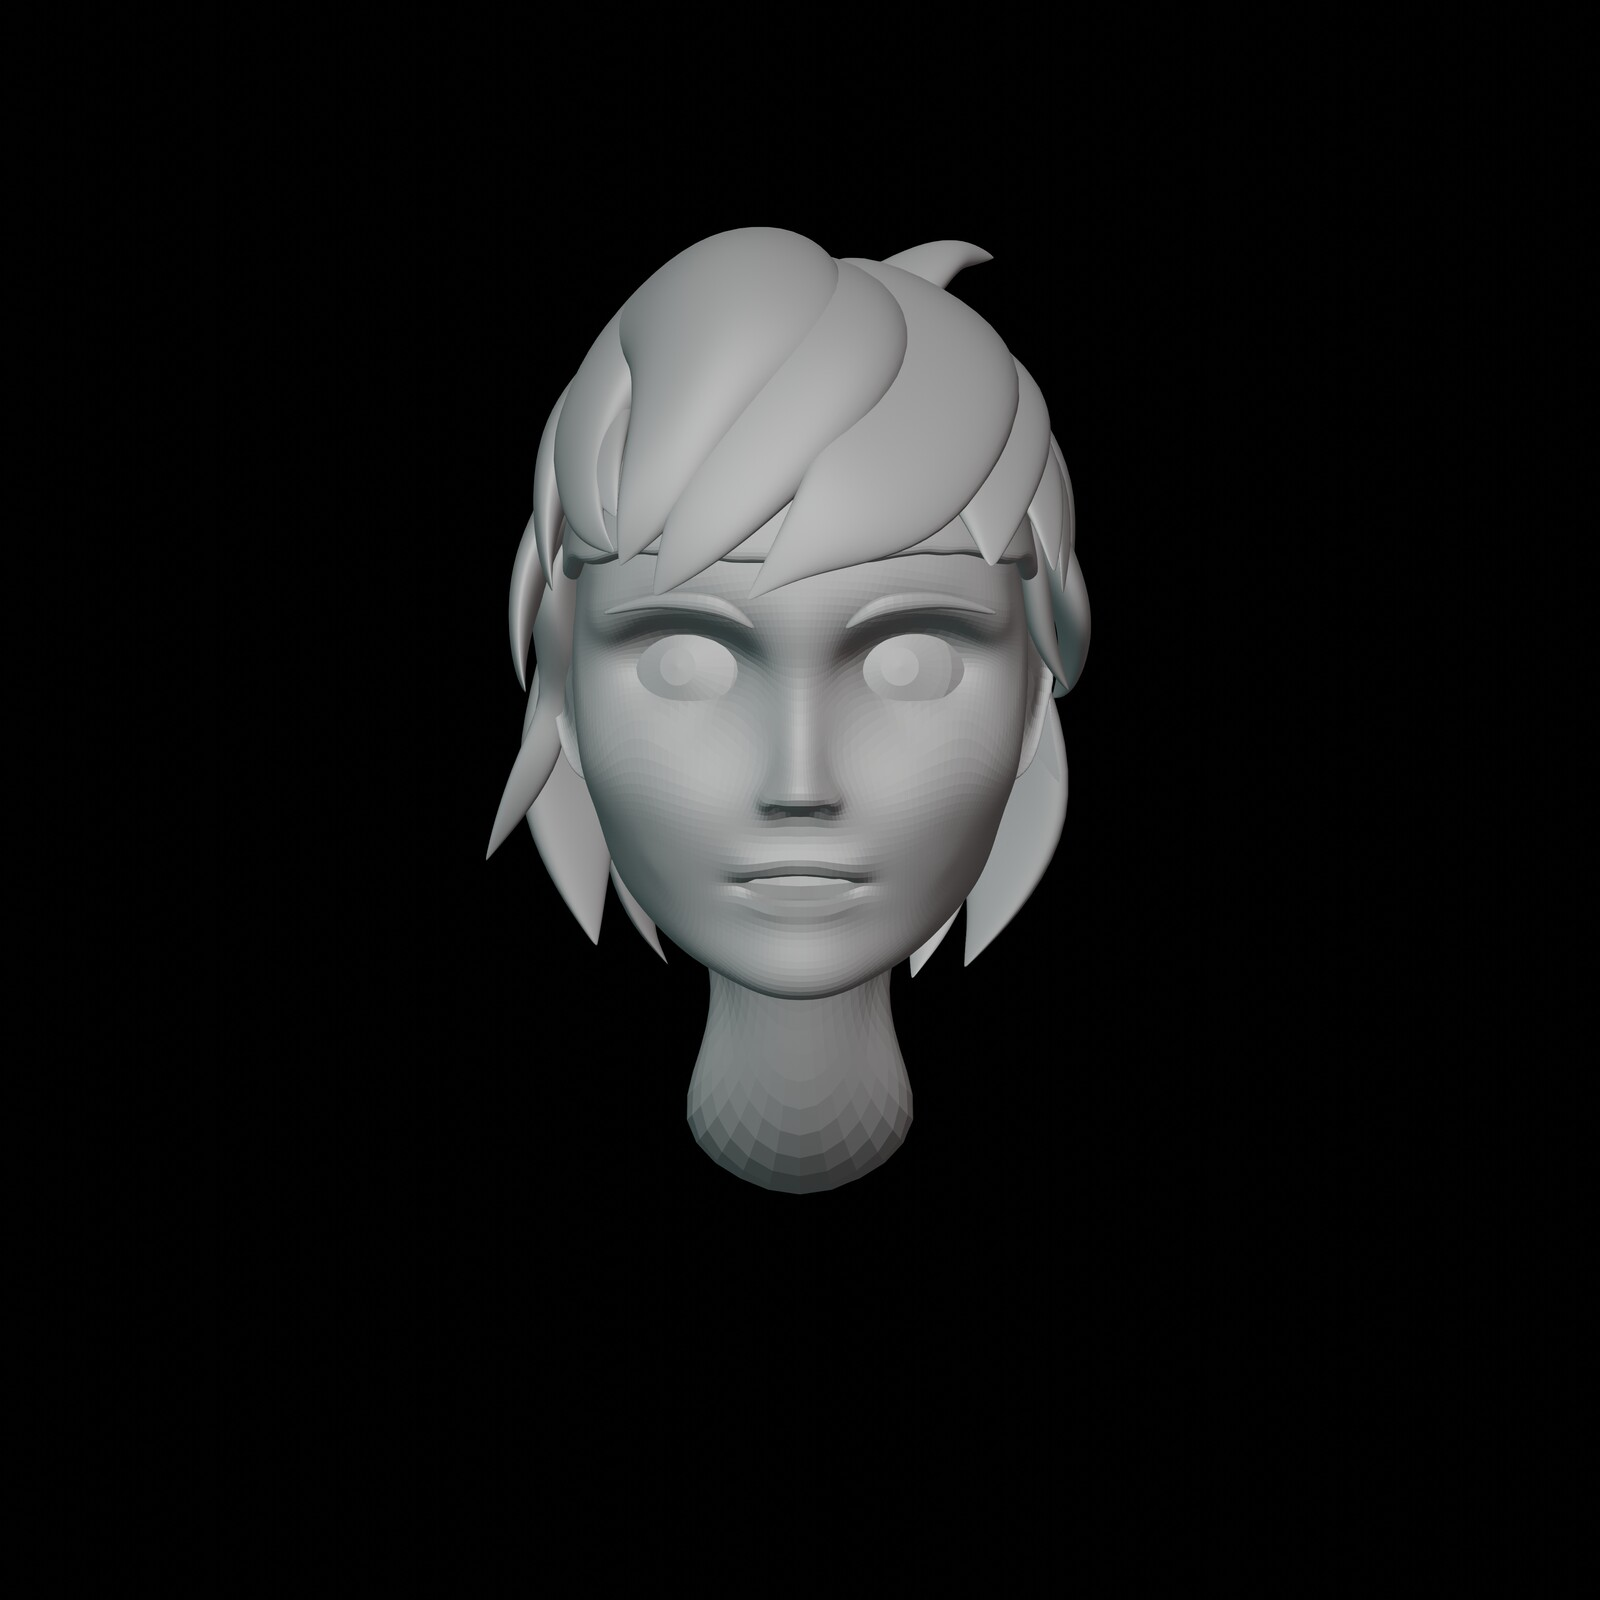 Iteration #4: A bit of a cheek reshape, I found the previous cheek a little too slim, so I made it a bit more robust so it looks like a boy. I rounded off the top of the head a bit more and made it overall a bit less tall.